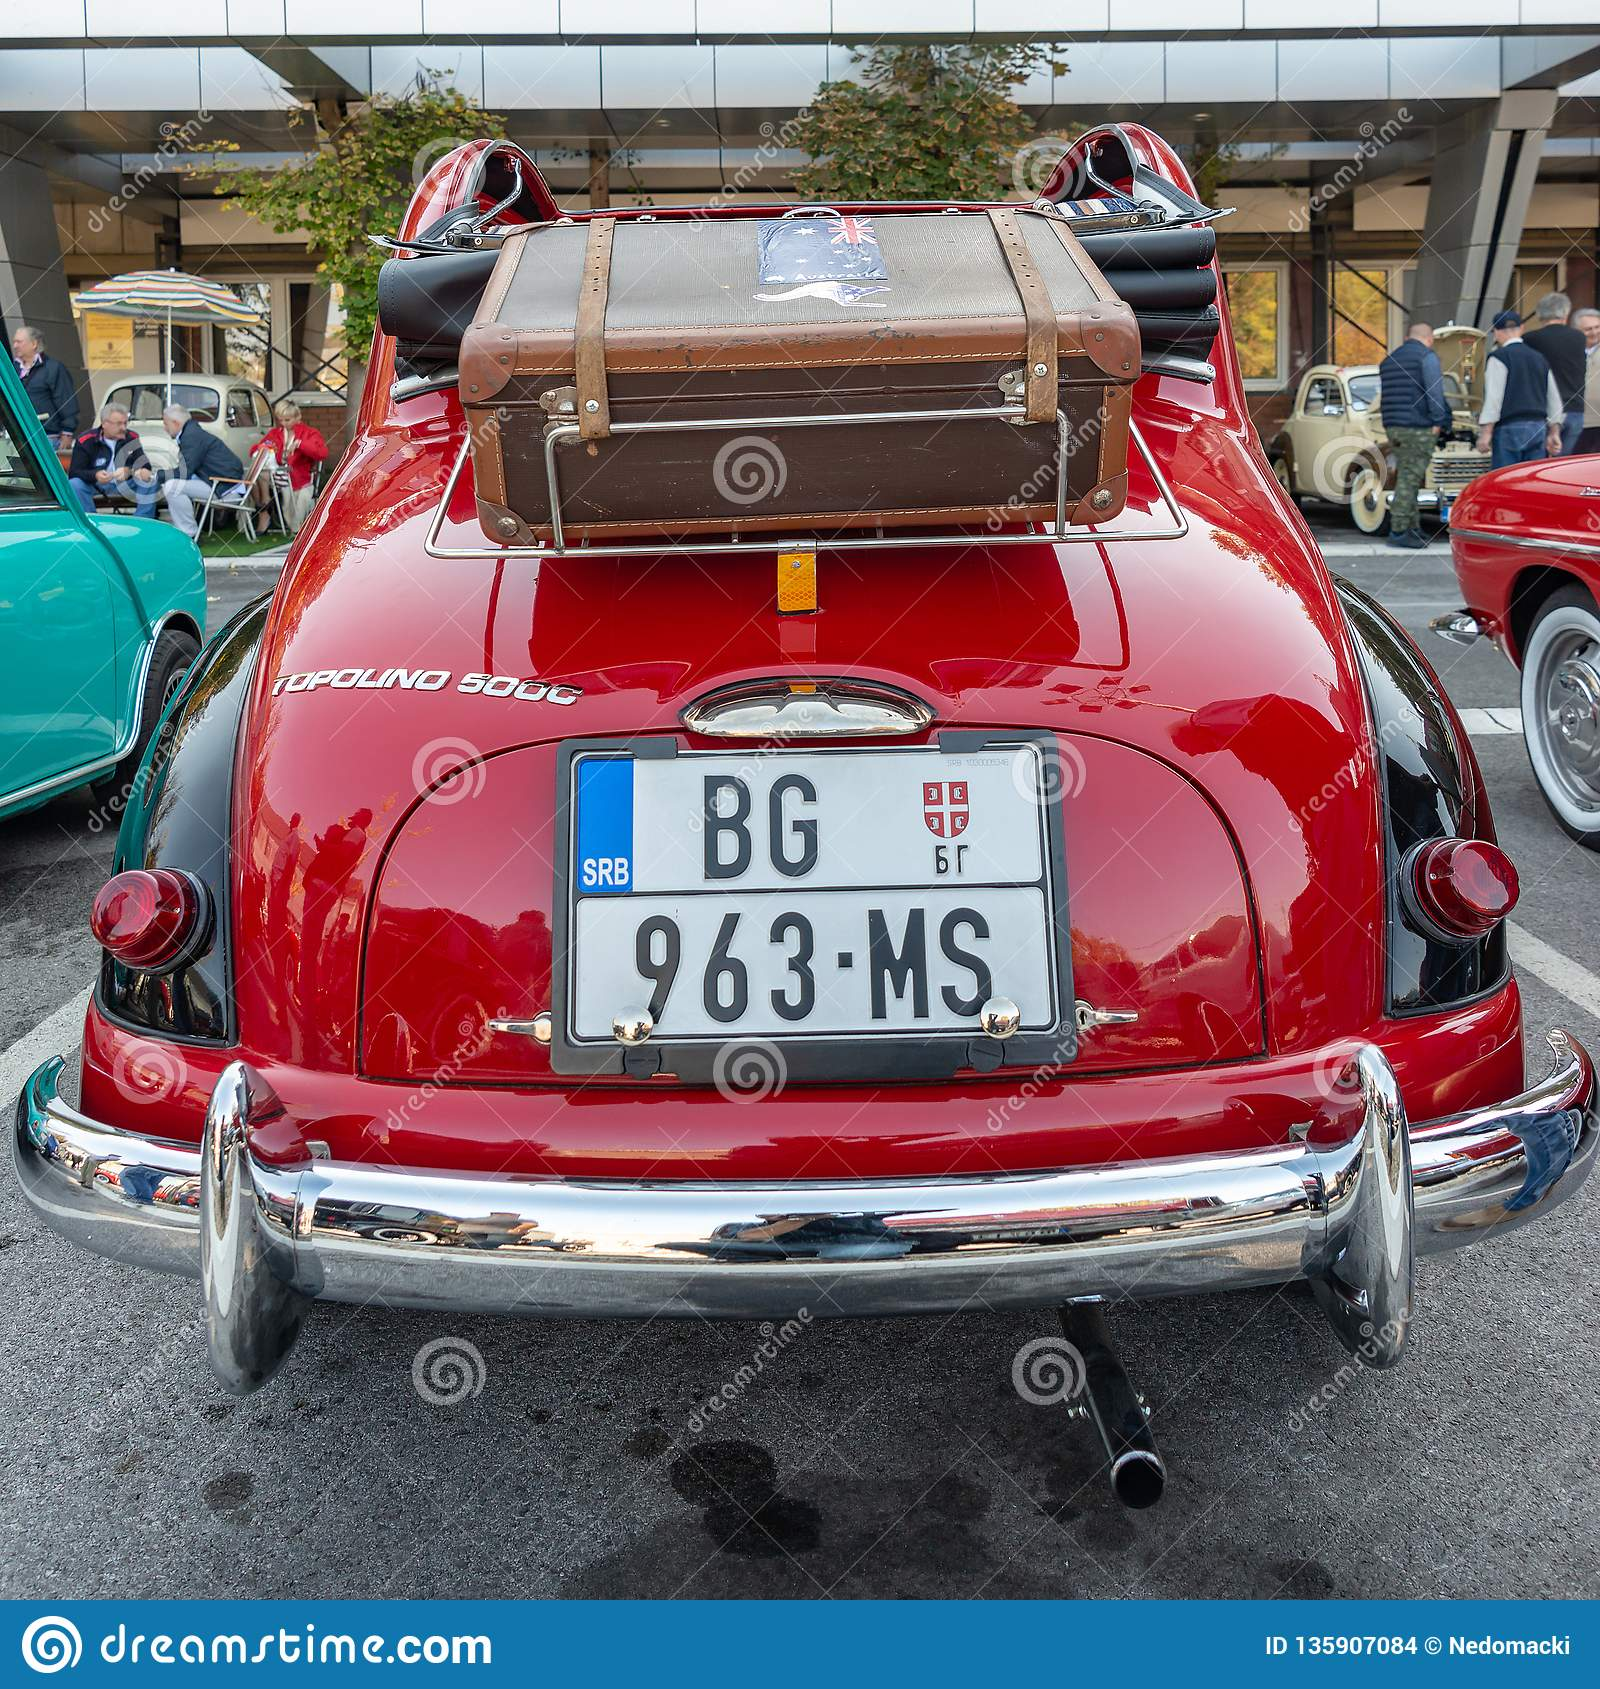 Fiat 500c Photos Free Royalty Free Stock Photos From Dreamstime